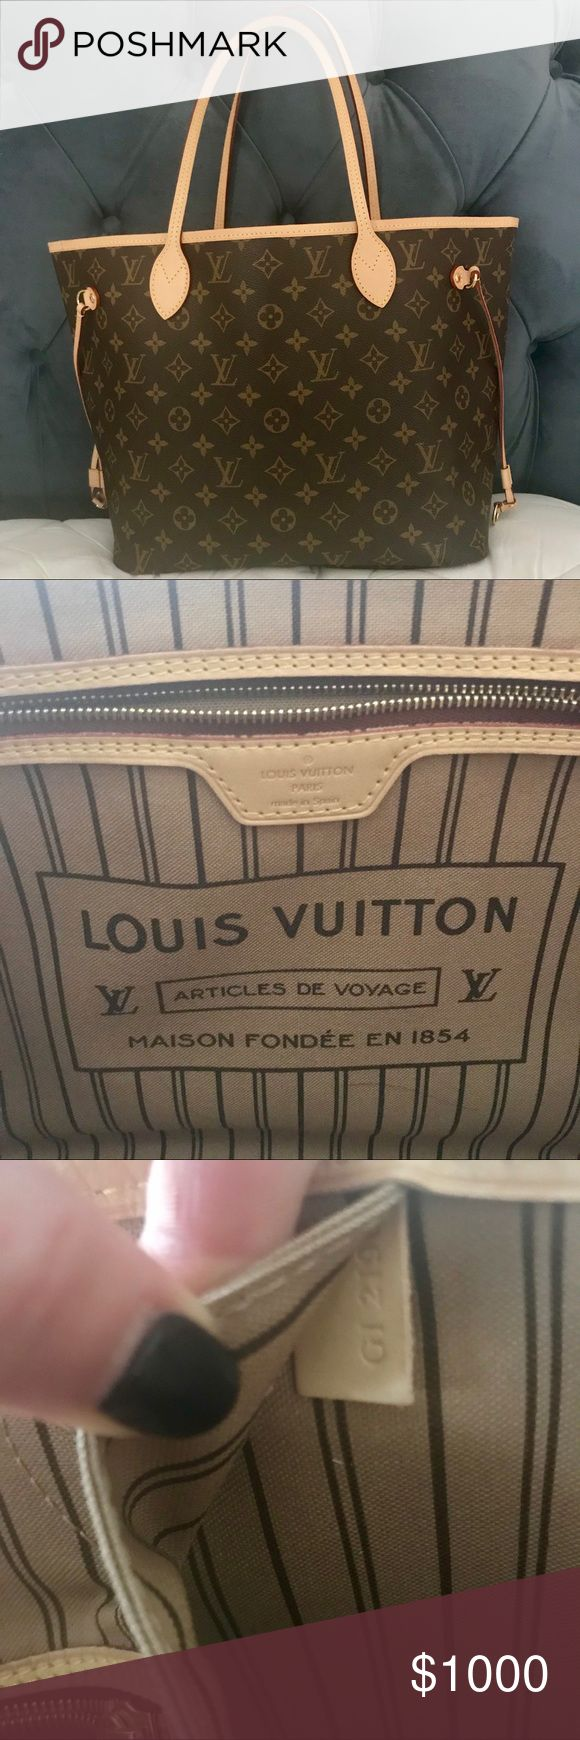 Date code on louis vuitton